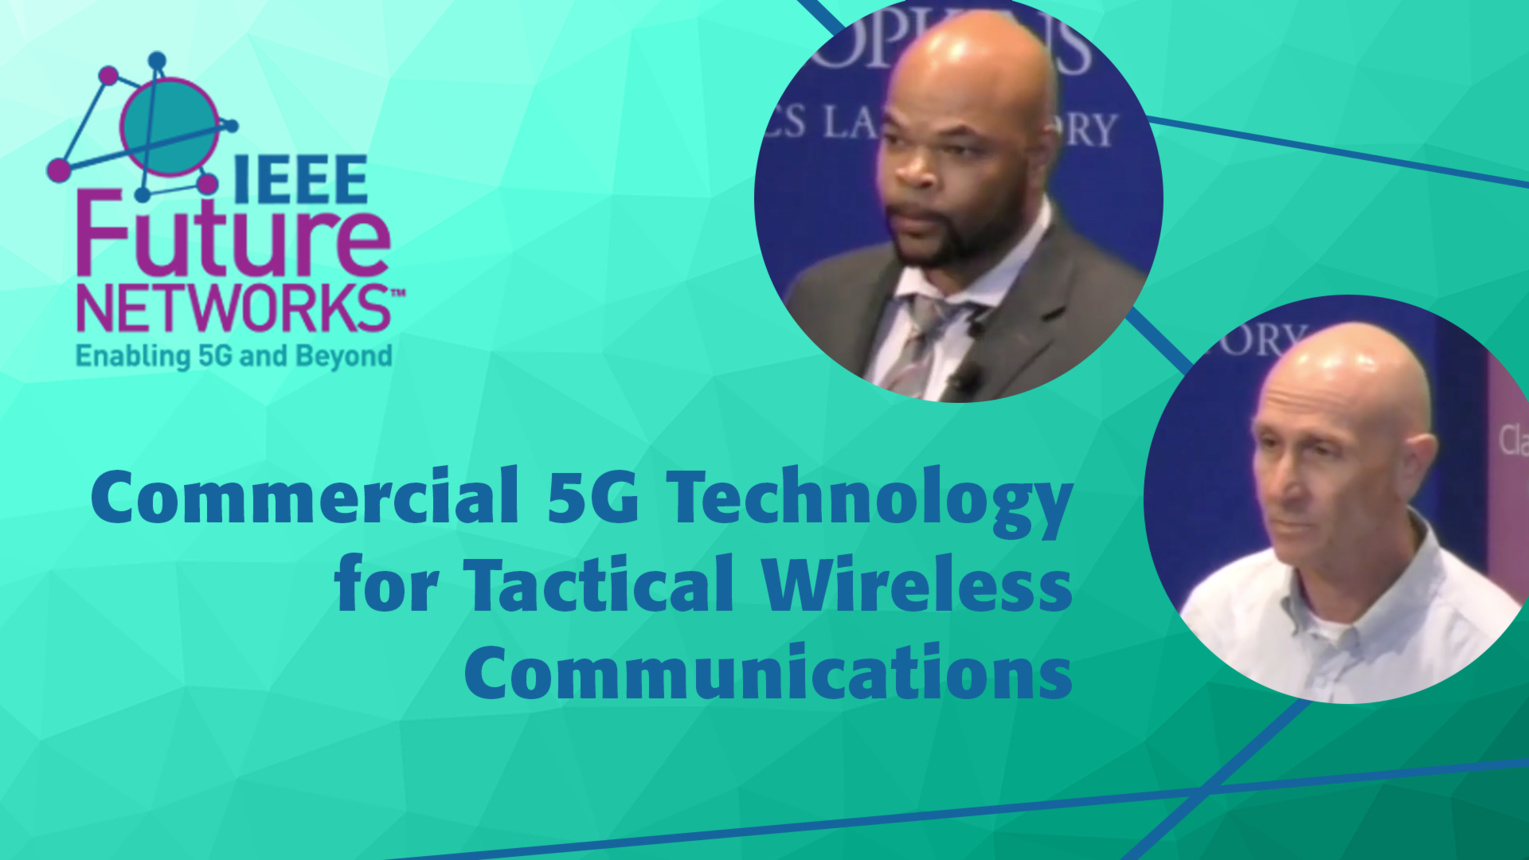 Commercial 5G Technology as a Building Block for Tactical Wireless Communications - Leland Brown and Issy Kipnis - 5G Technologies for Tactical and First Responder Networks 2018